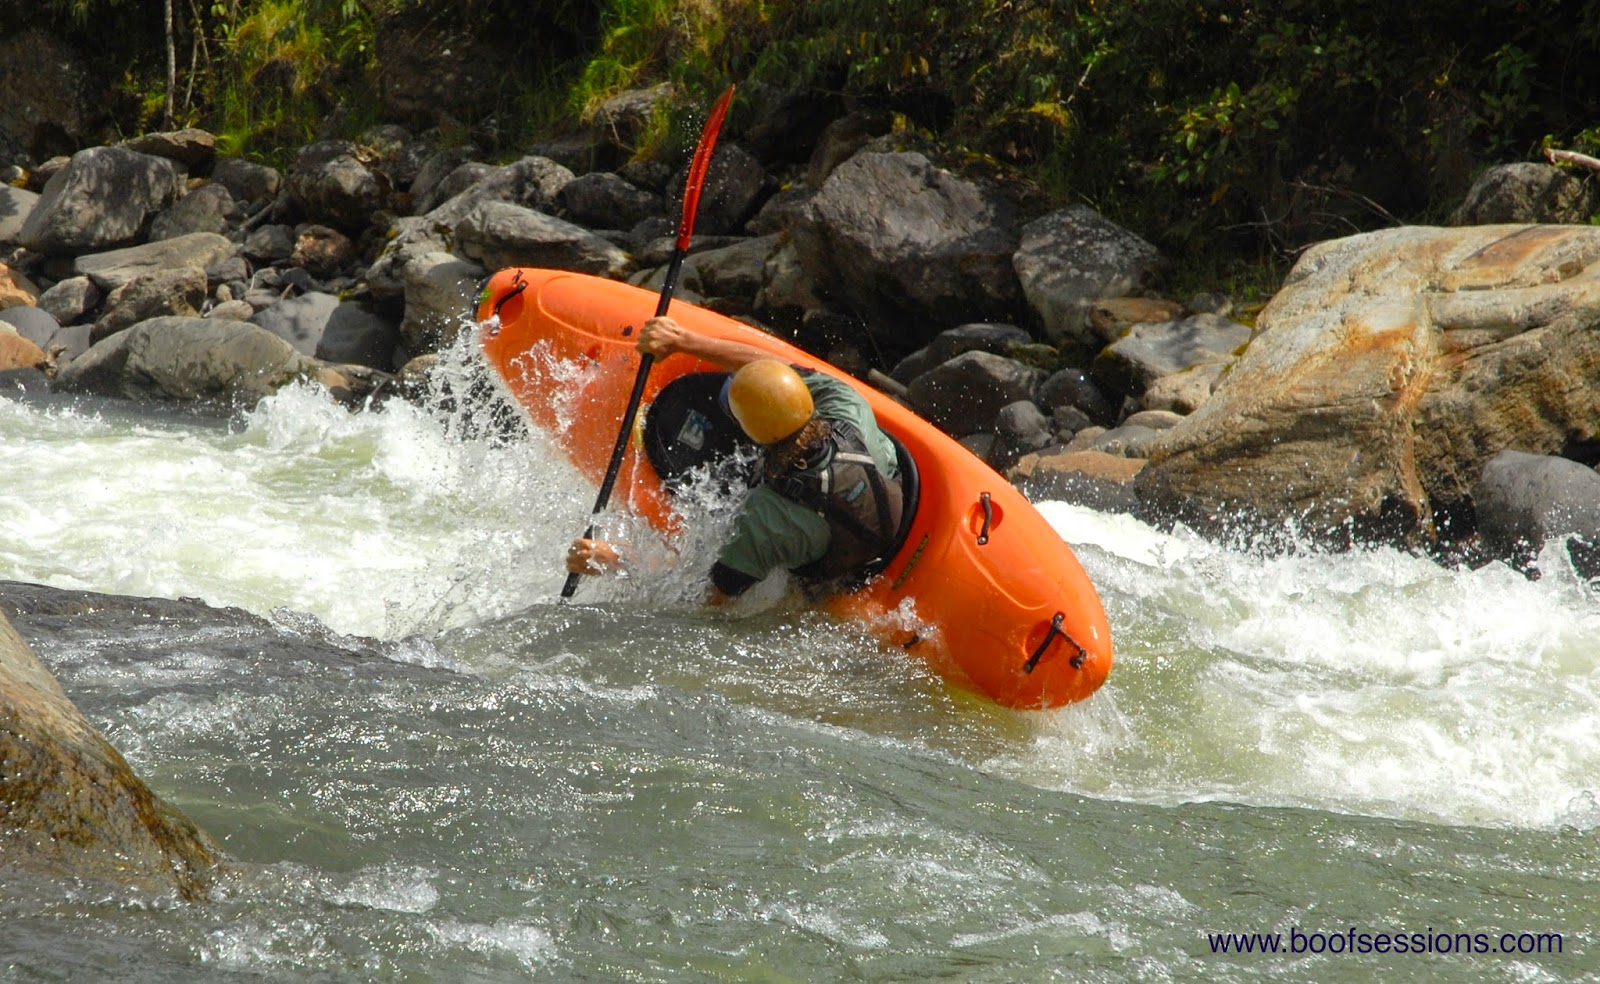 The Bridge To Is A Good Warm Up For Cheese House Solid Class IV Rapids With Continuous Characteristics And Awesome Boofs